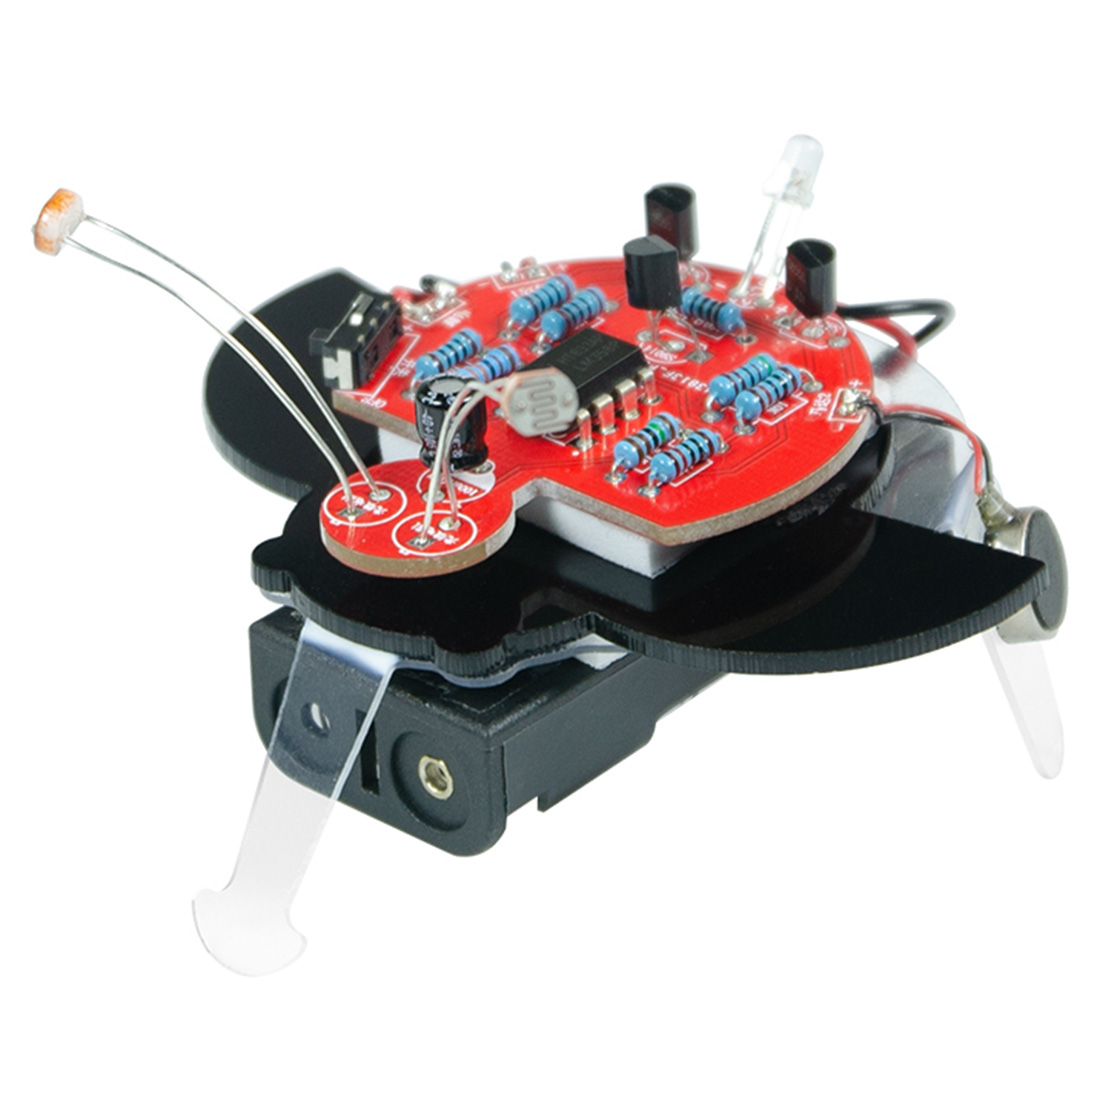 MODIKER DIY Fireworm Glowworm STEAM Photographic Robot Educational Kit  Photo Resistor Programmable Toys